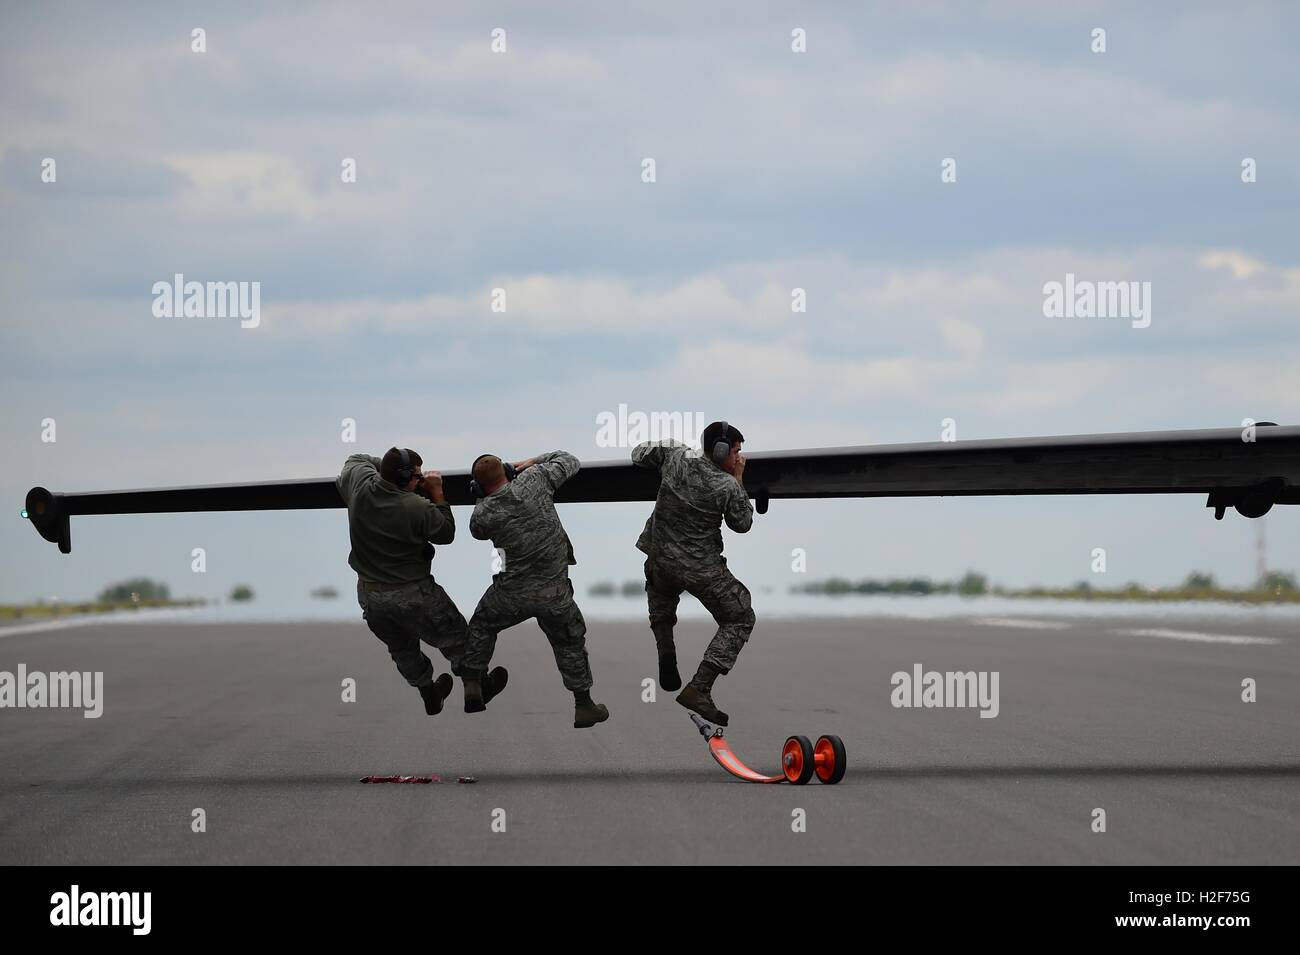 U.S. Air Force soldiers push down on the wing of a U-2 Dragon Lady aircraft after landing at Royal Air Force Fairford - Stock Image